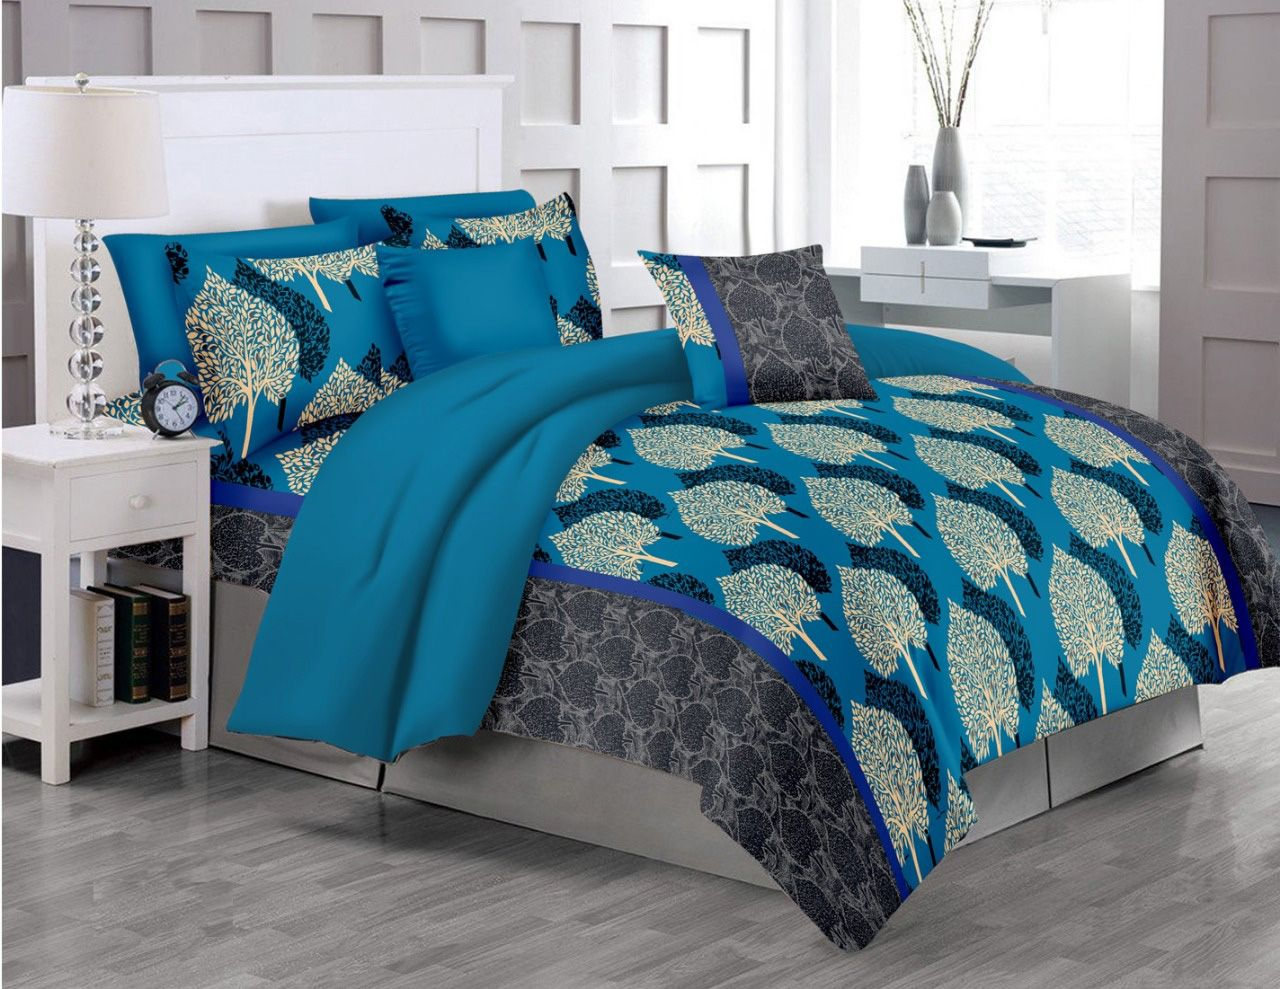 super king size bed in 2020 Bed, Bed sheets, White bed